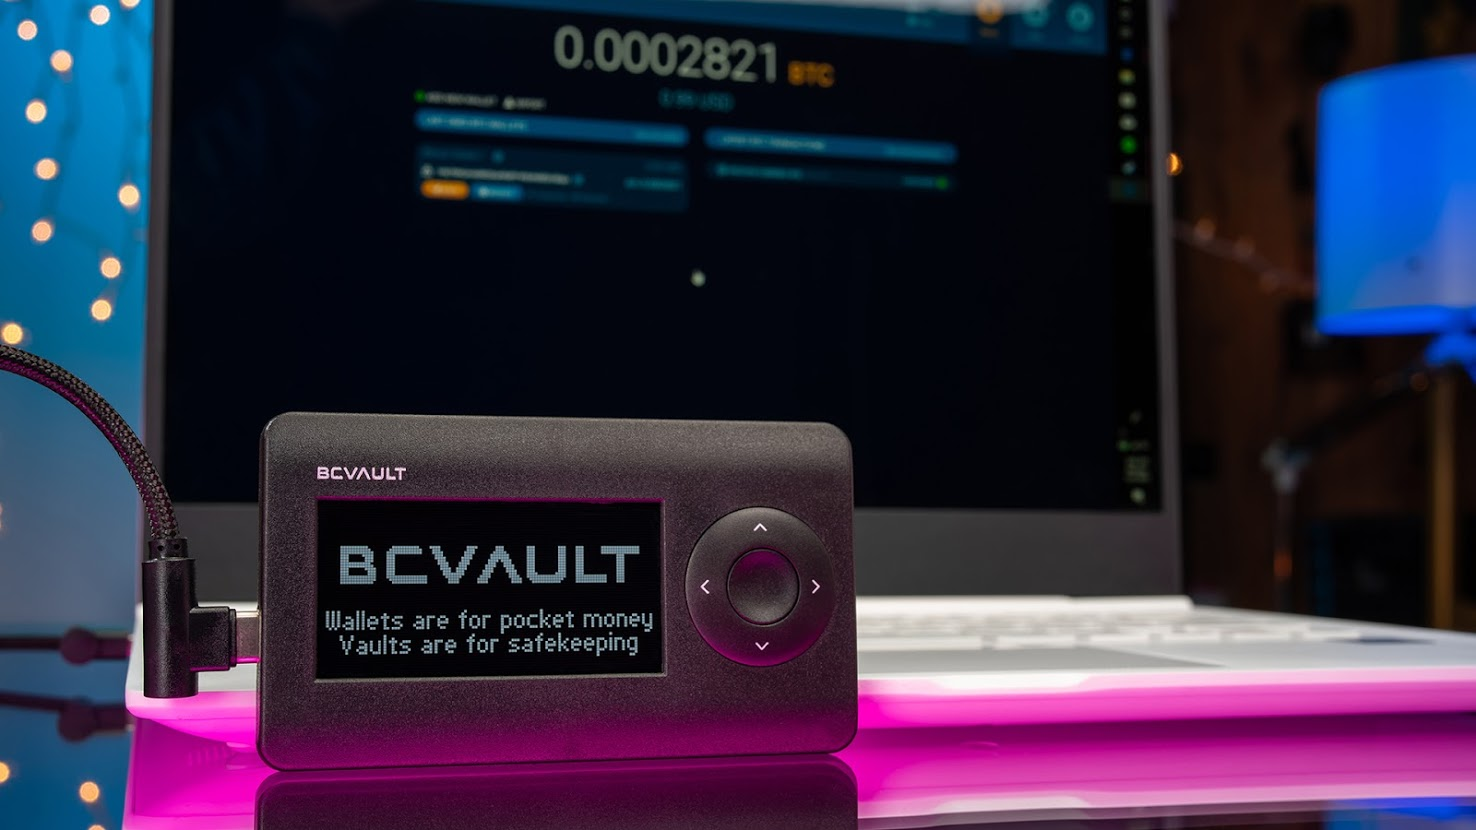 BC VAULT is the most secure type of cryptocurrency vault / wallet which stores the user's private keys on a secure hardware device.